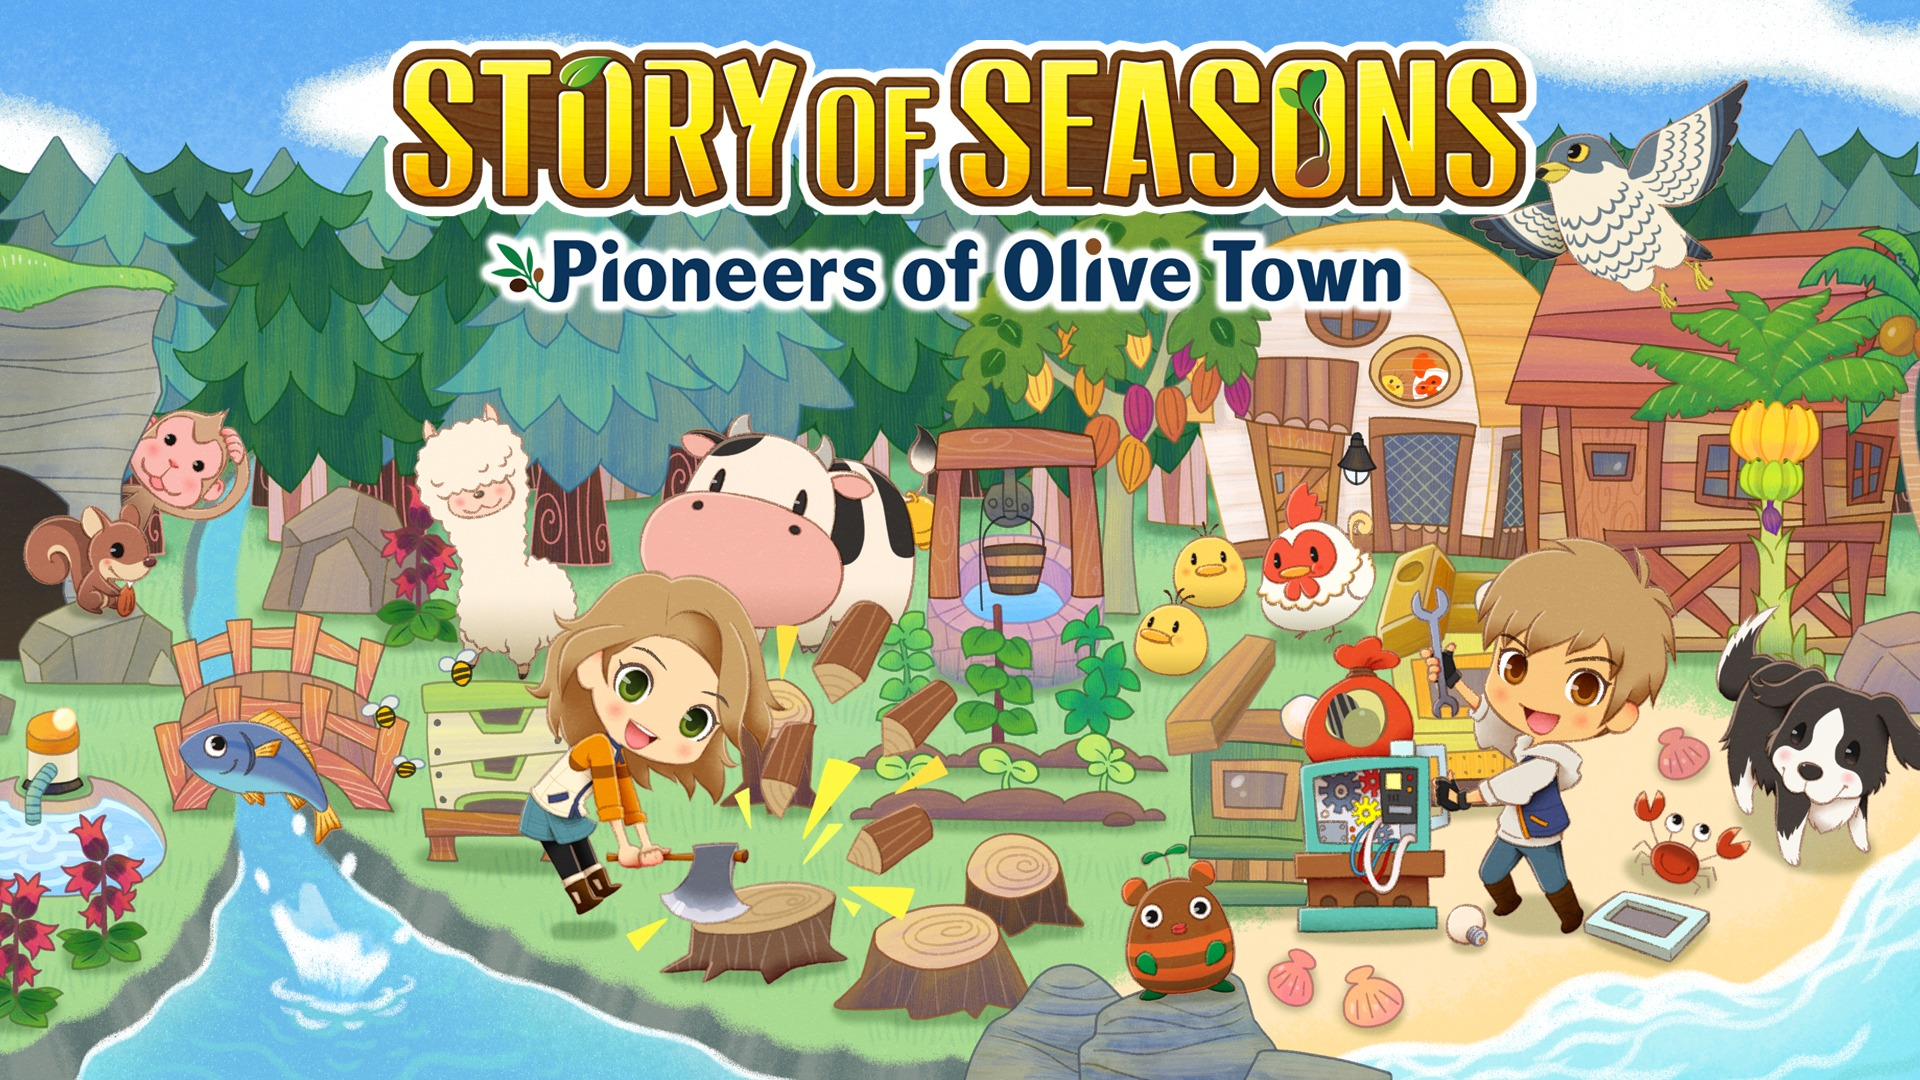 Story of Seasons Pioneers of Olive Town stats facts